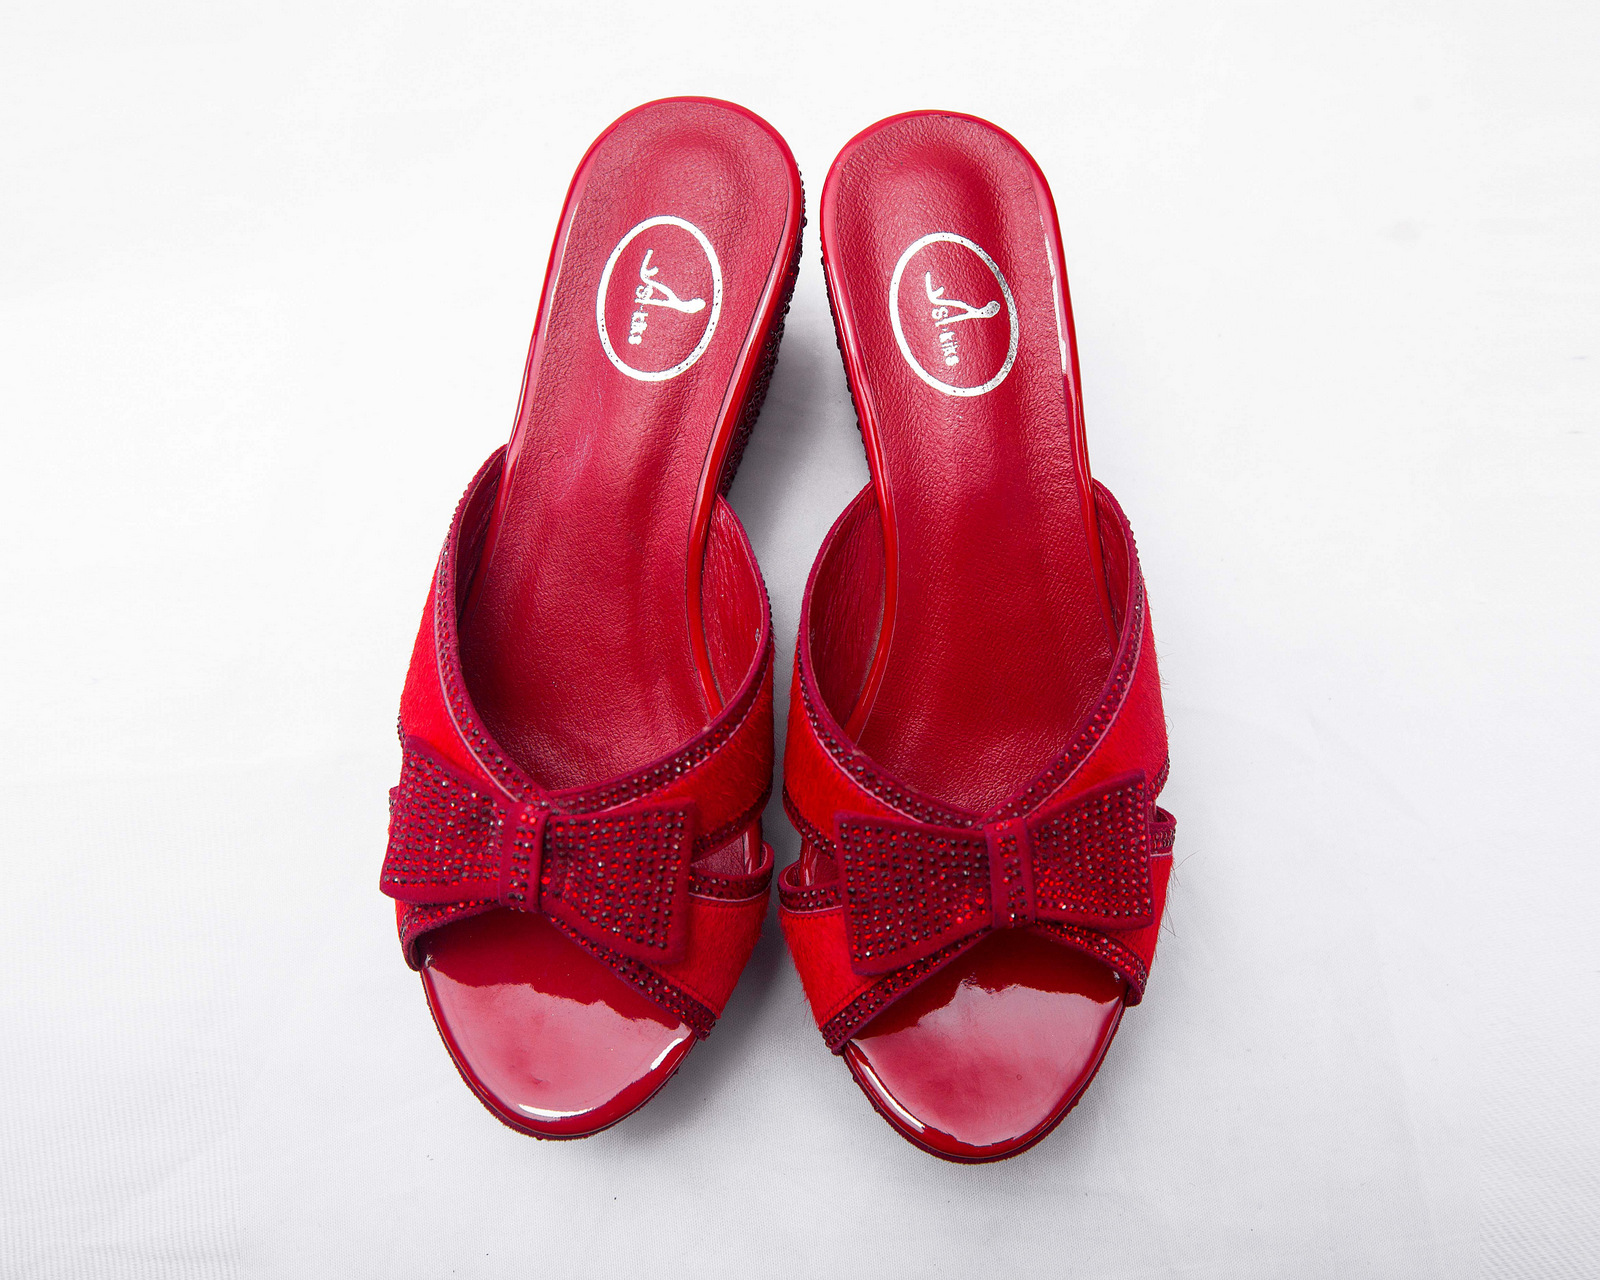 St. Kiks Wedge Slippers